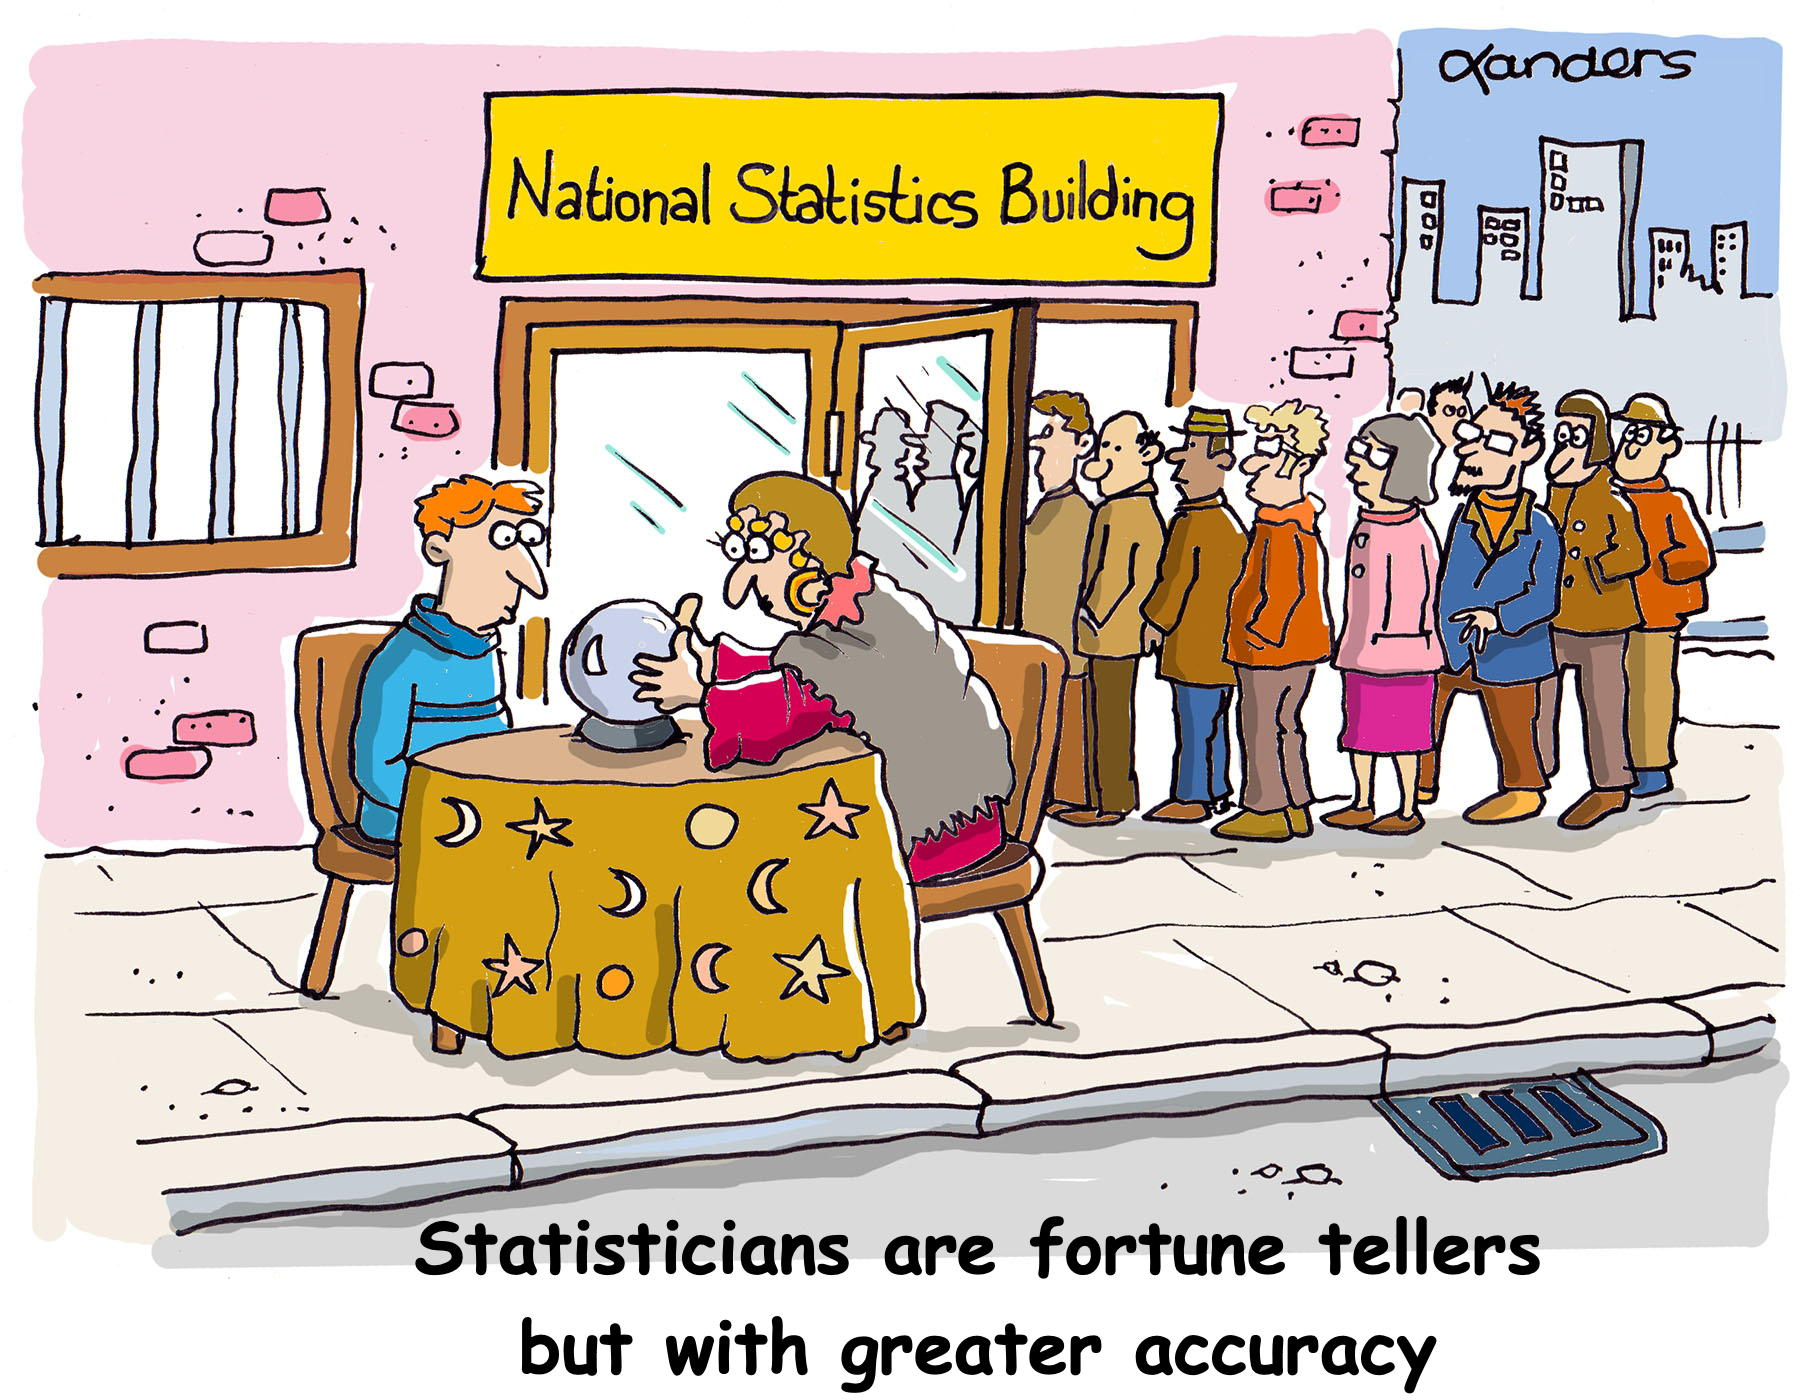 Cartoon with fortune teller and statisticians